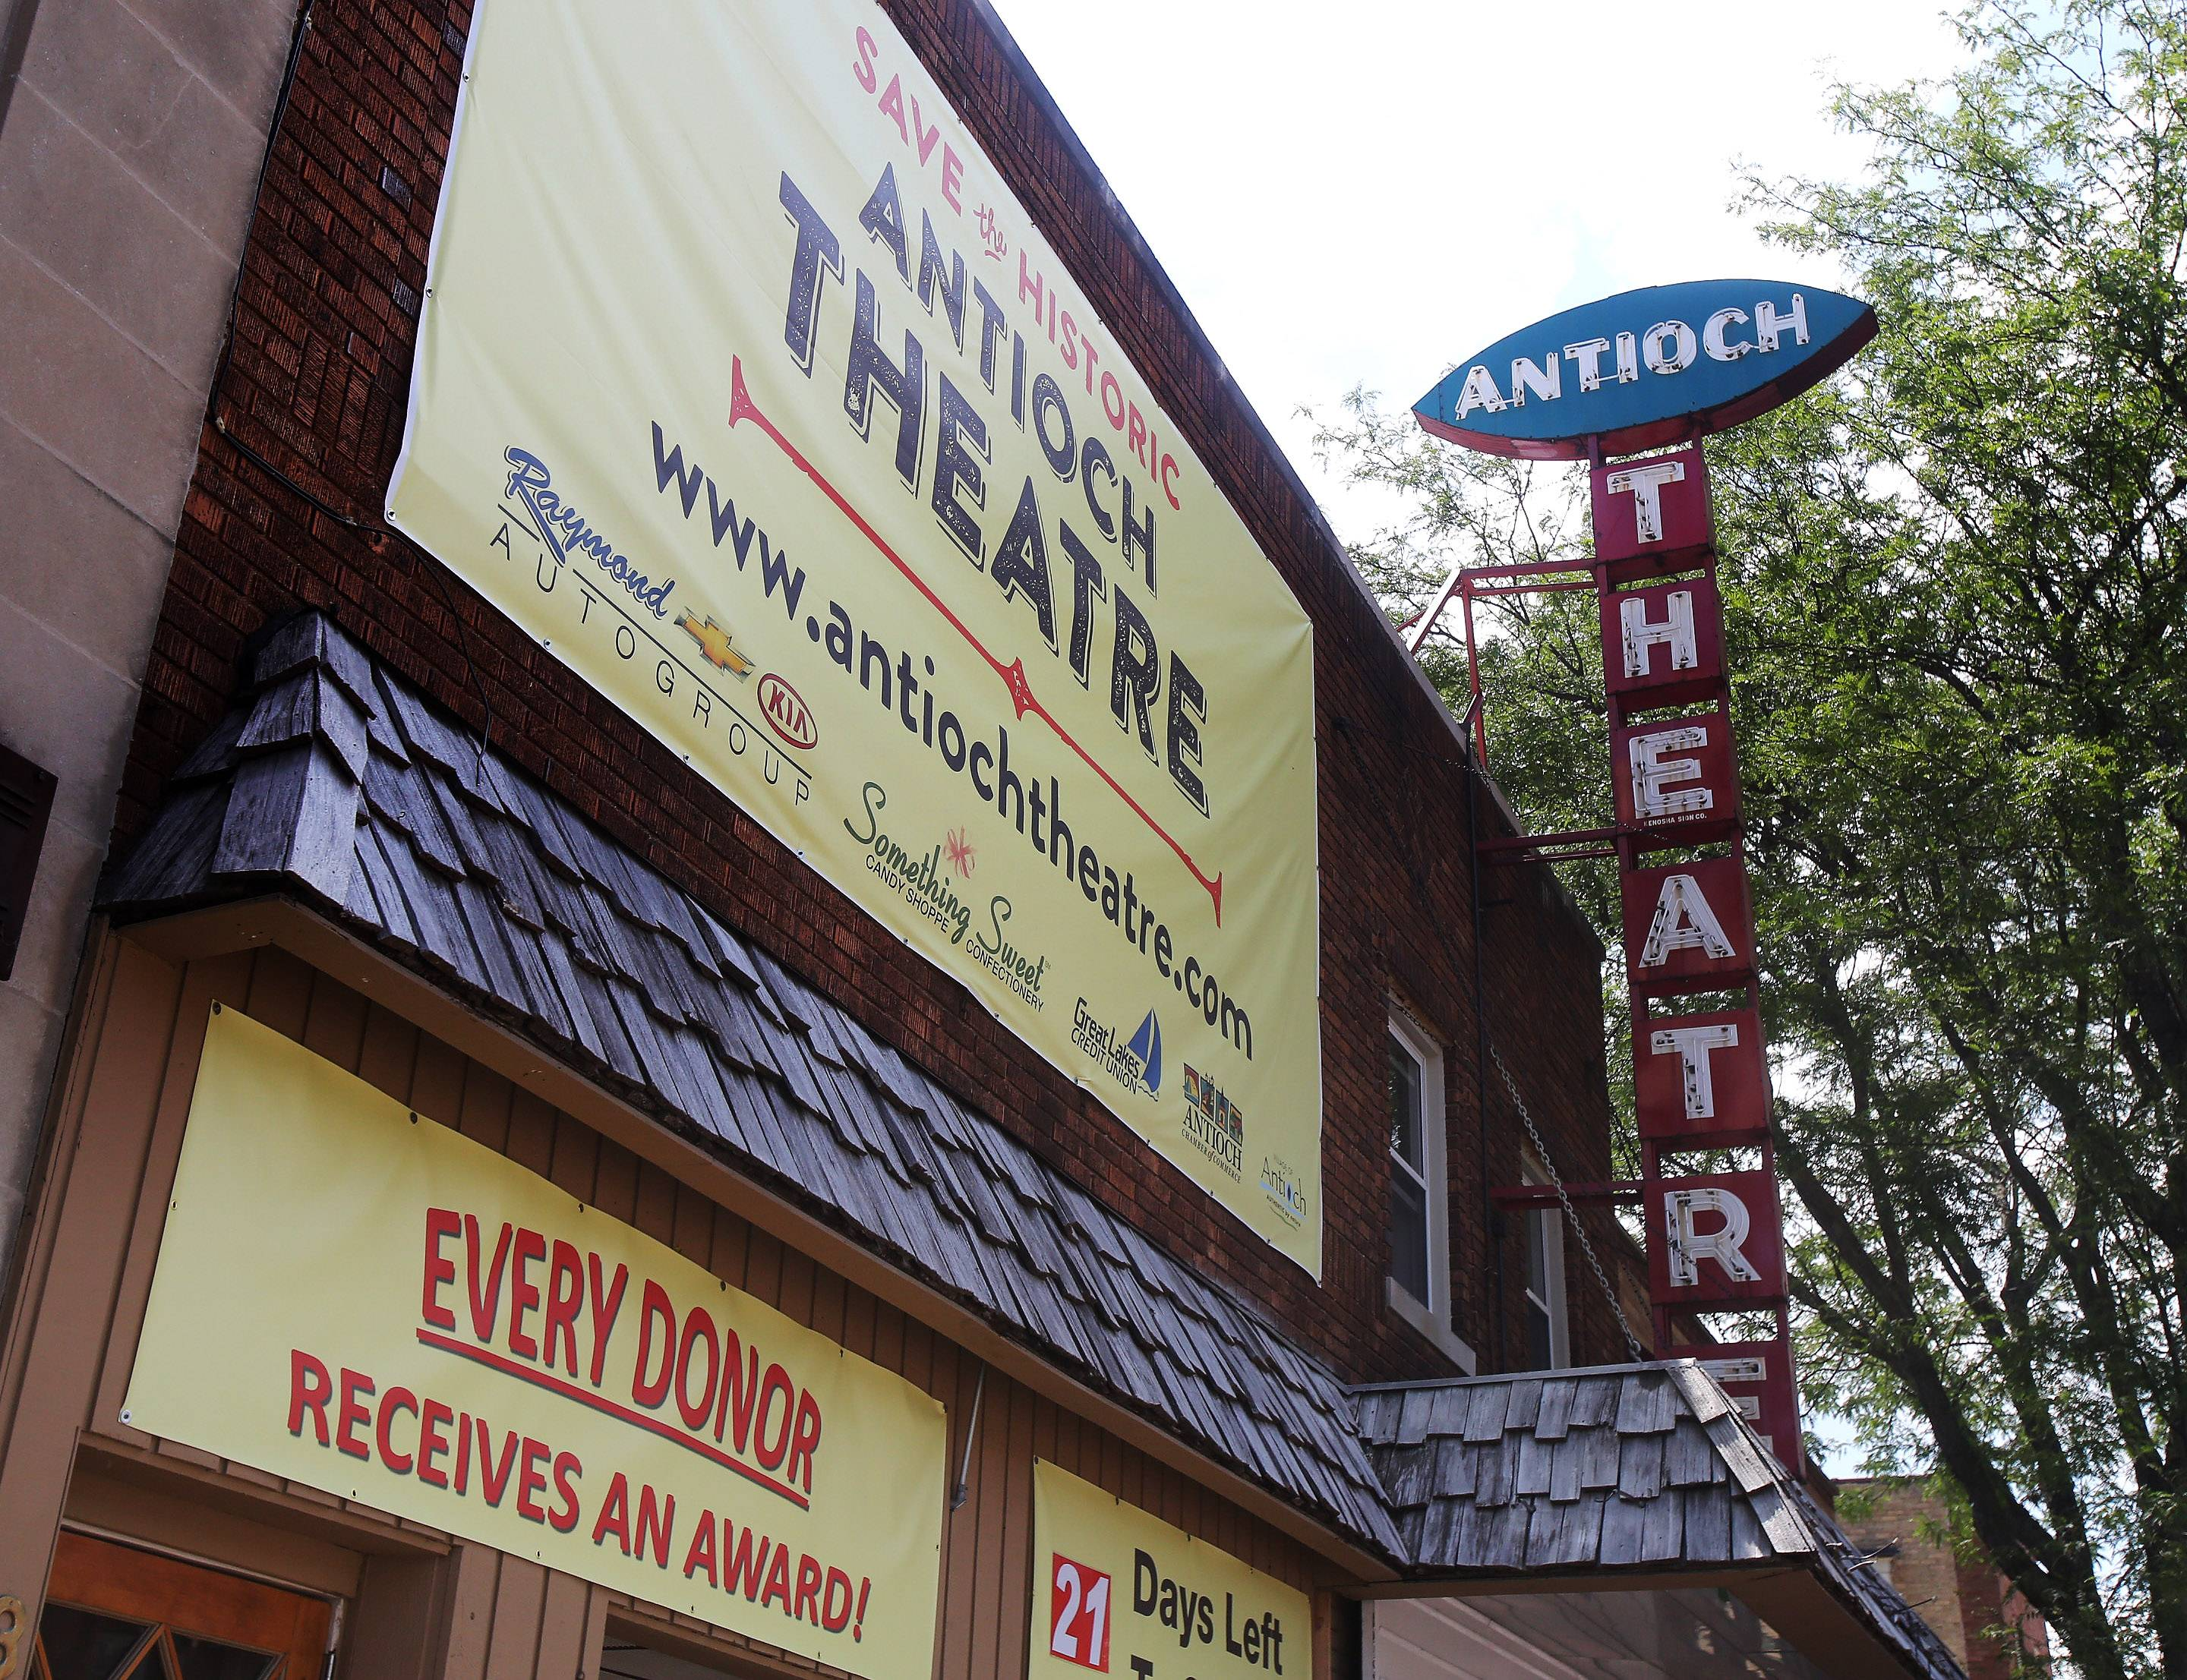 New Antioch Theater owner Tim Downey says he needs to raise $42,000 for digital film equipment and building renovations by July 31 or he won't be able to reopen the theater that dates to 1919.